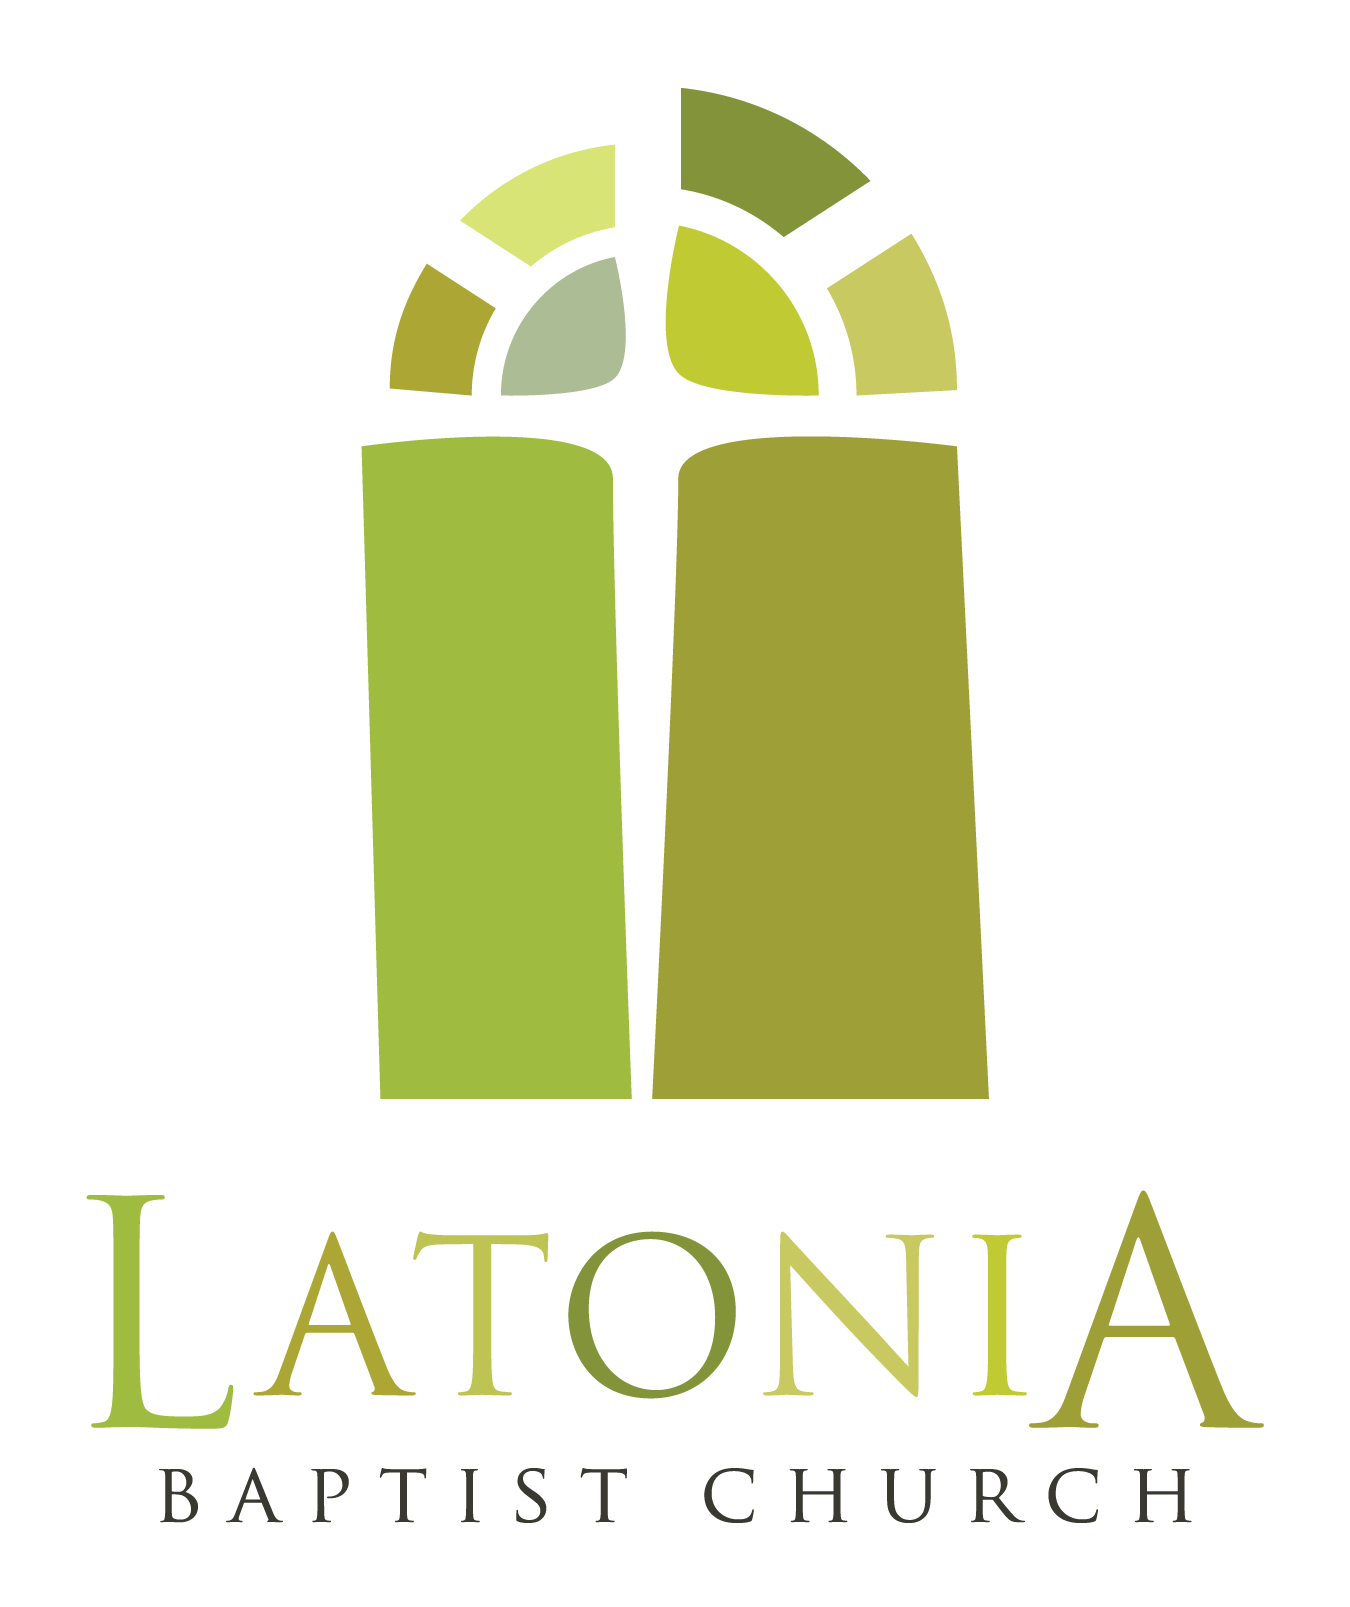 Latonia Baptist Church